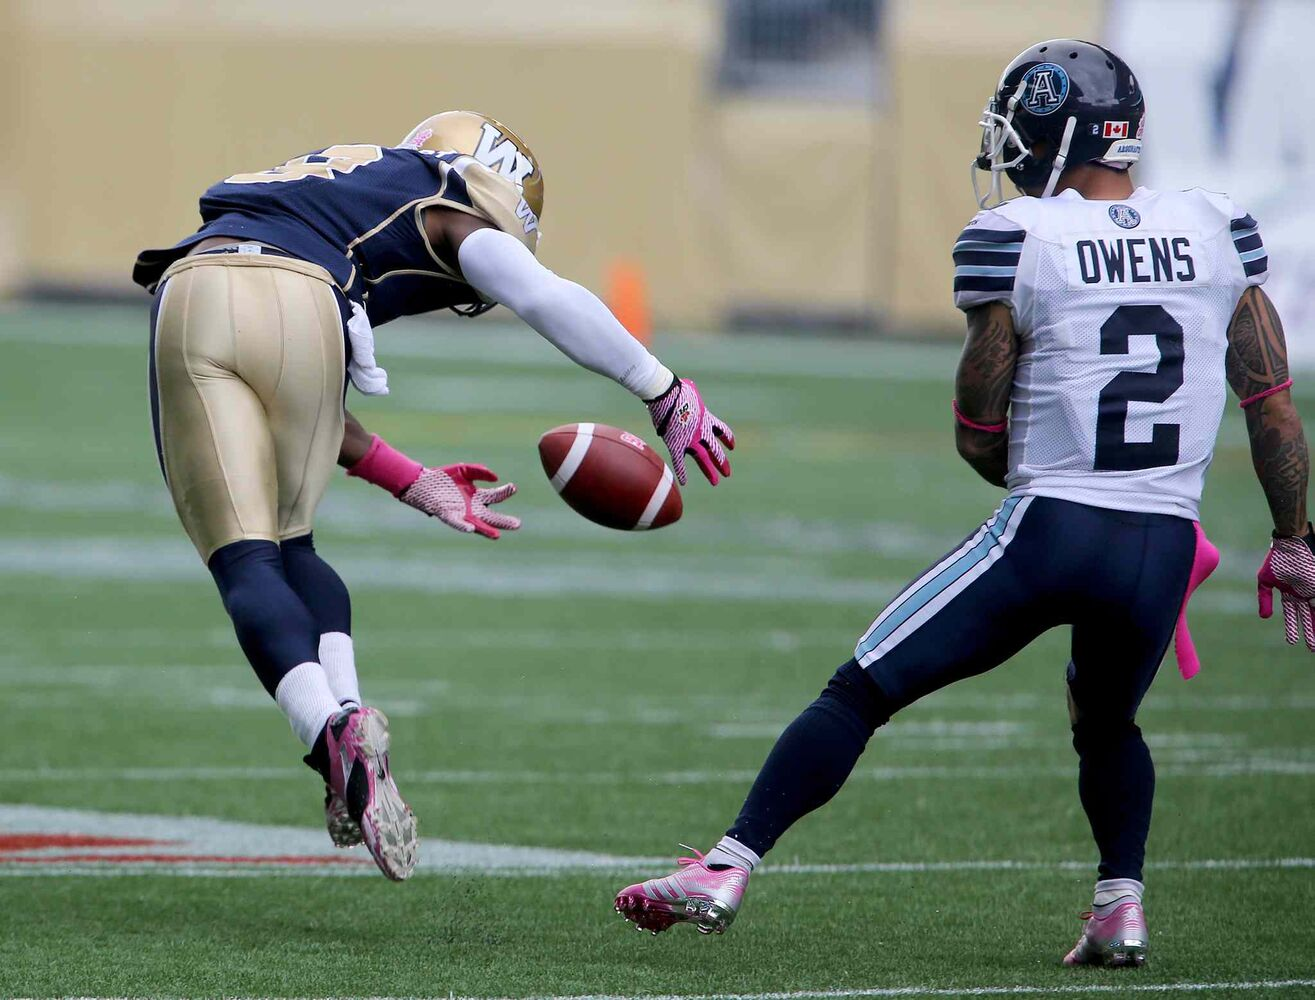 Winnipeg Blue Bombers' Brandon Stewart (8) misses an interception opportunity against the Toronto Argonauts' during the first half. (TREVOR HAGAN / WINNIPEG FREE PRESS)